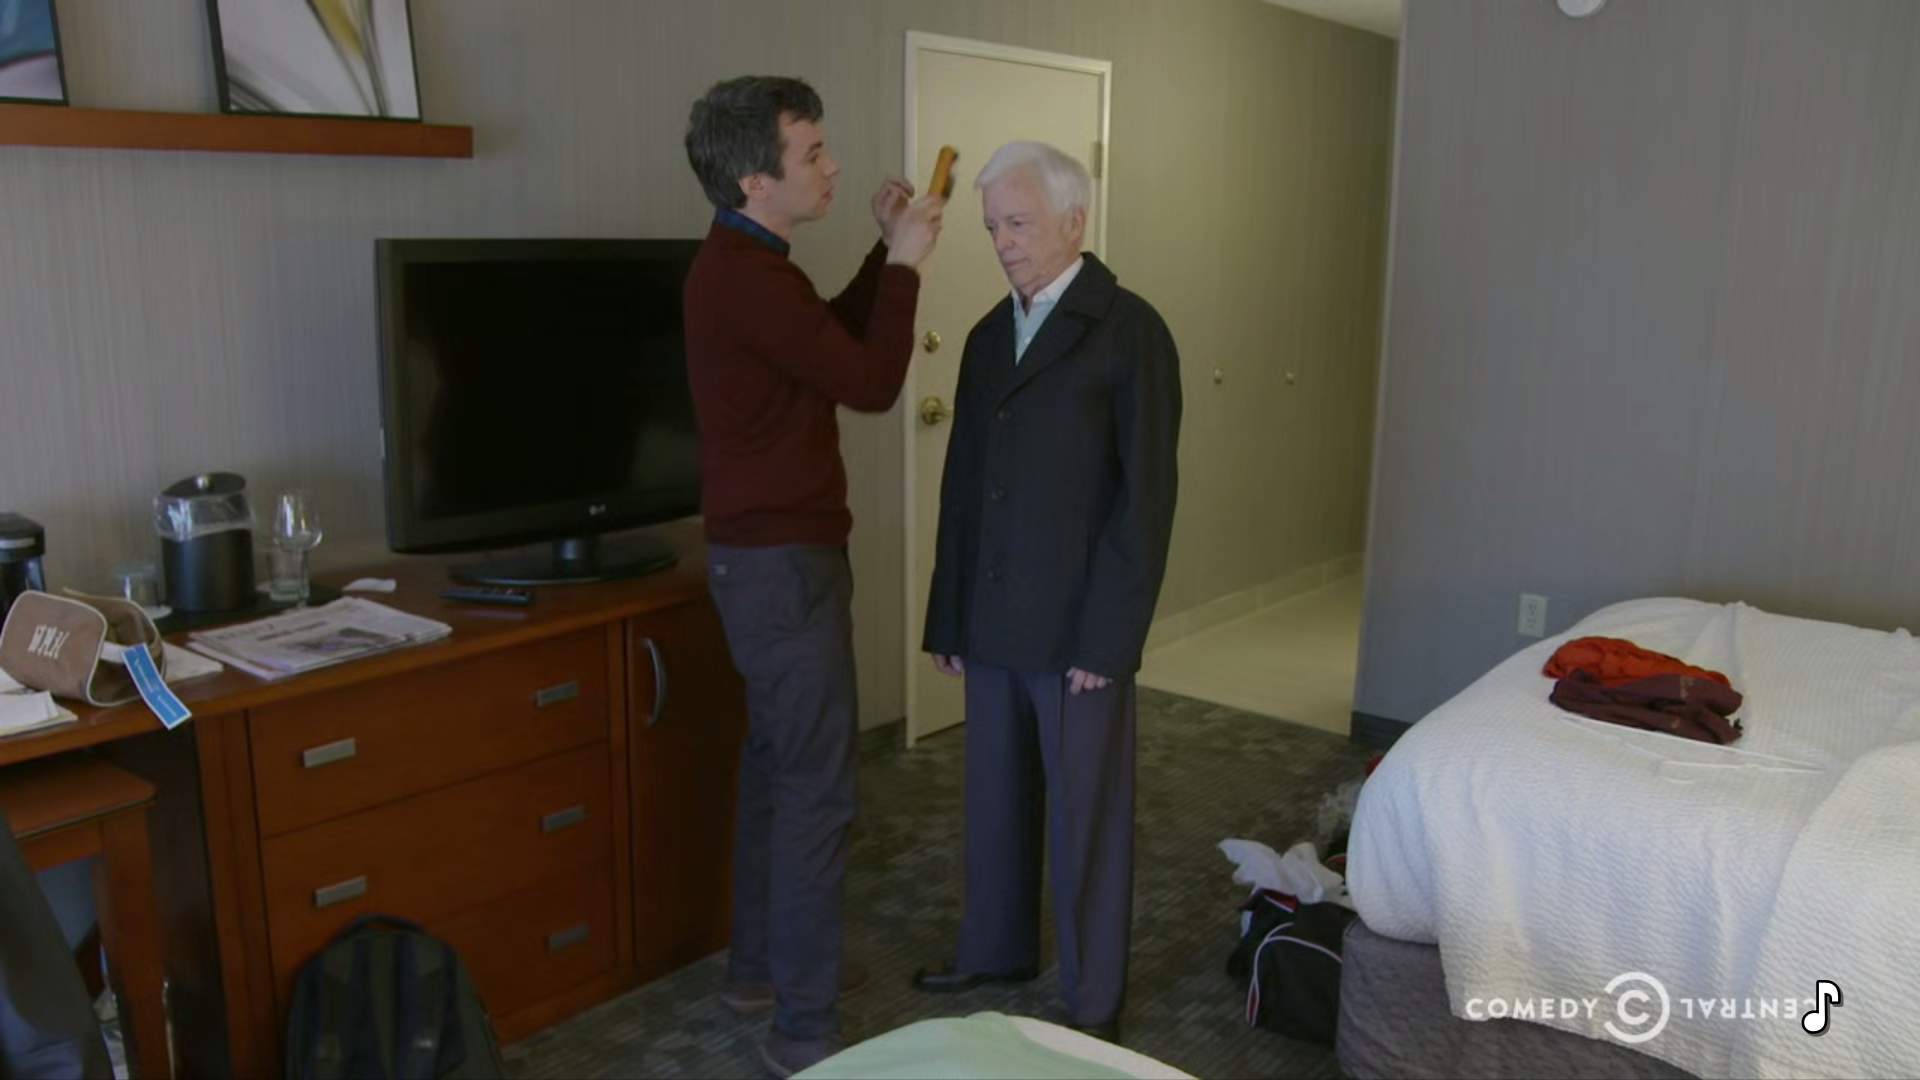 Finding Frances — The mean-funny genius of Nathan Fielder